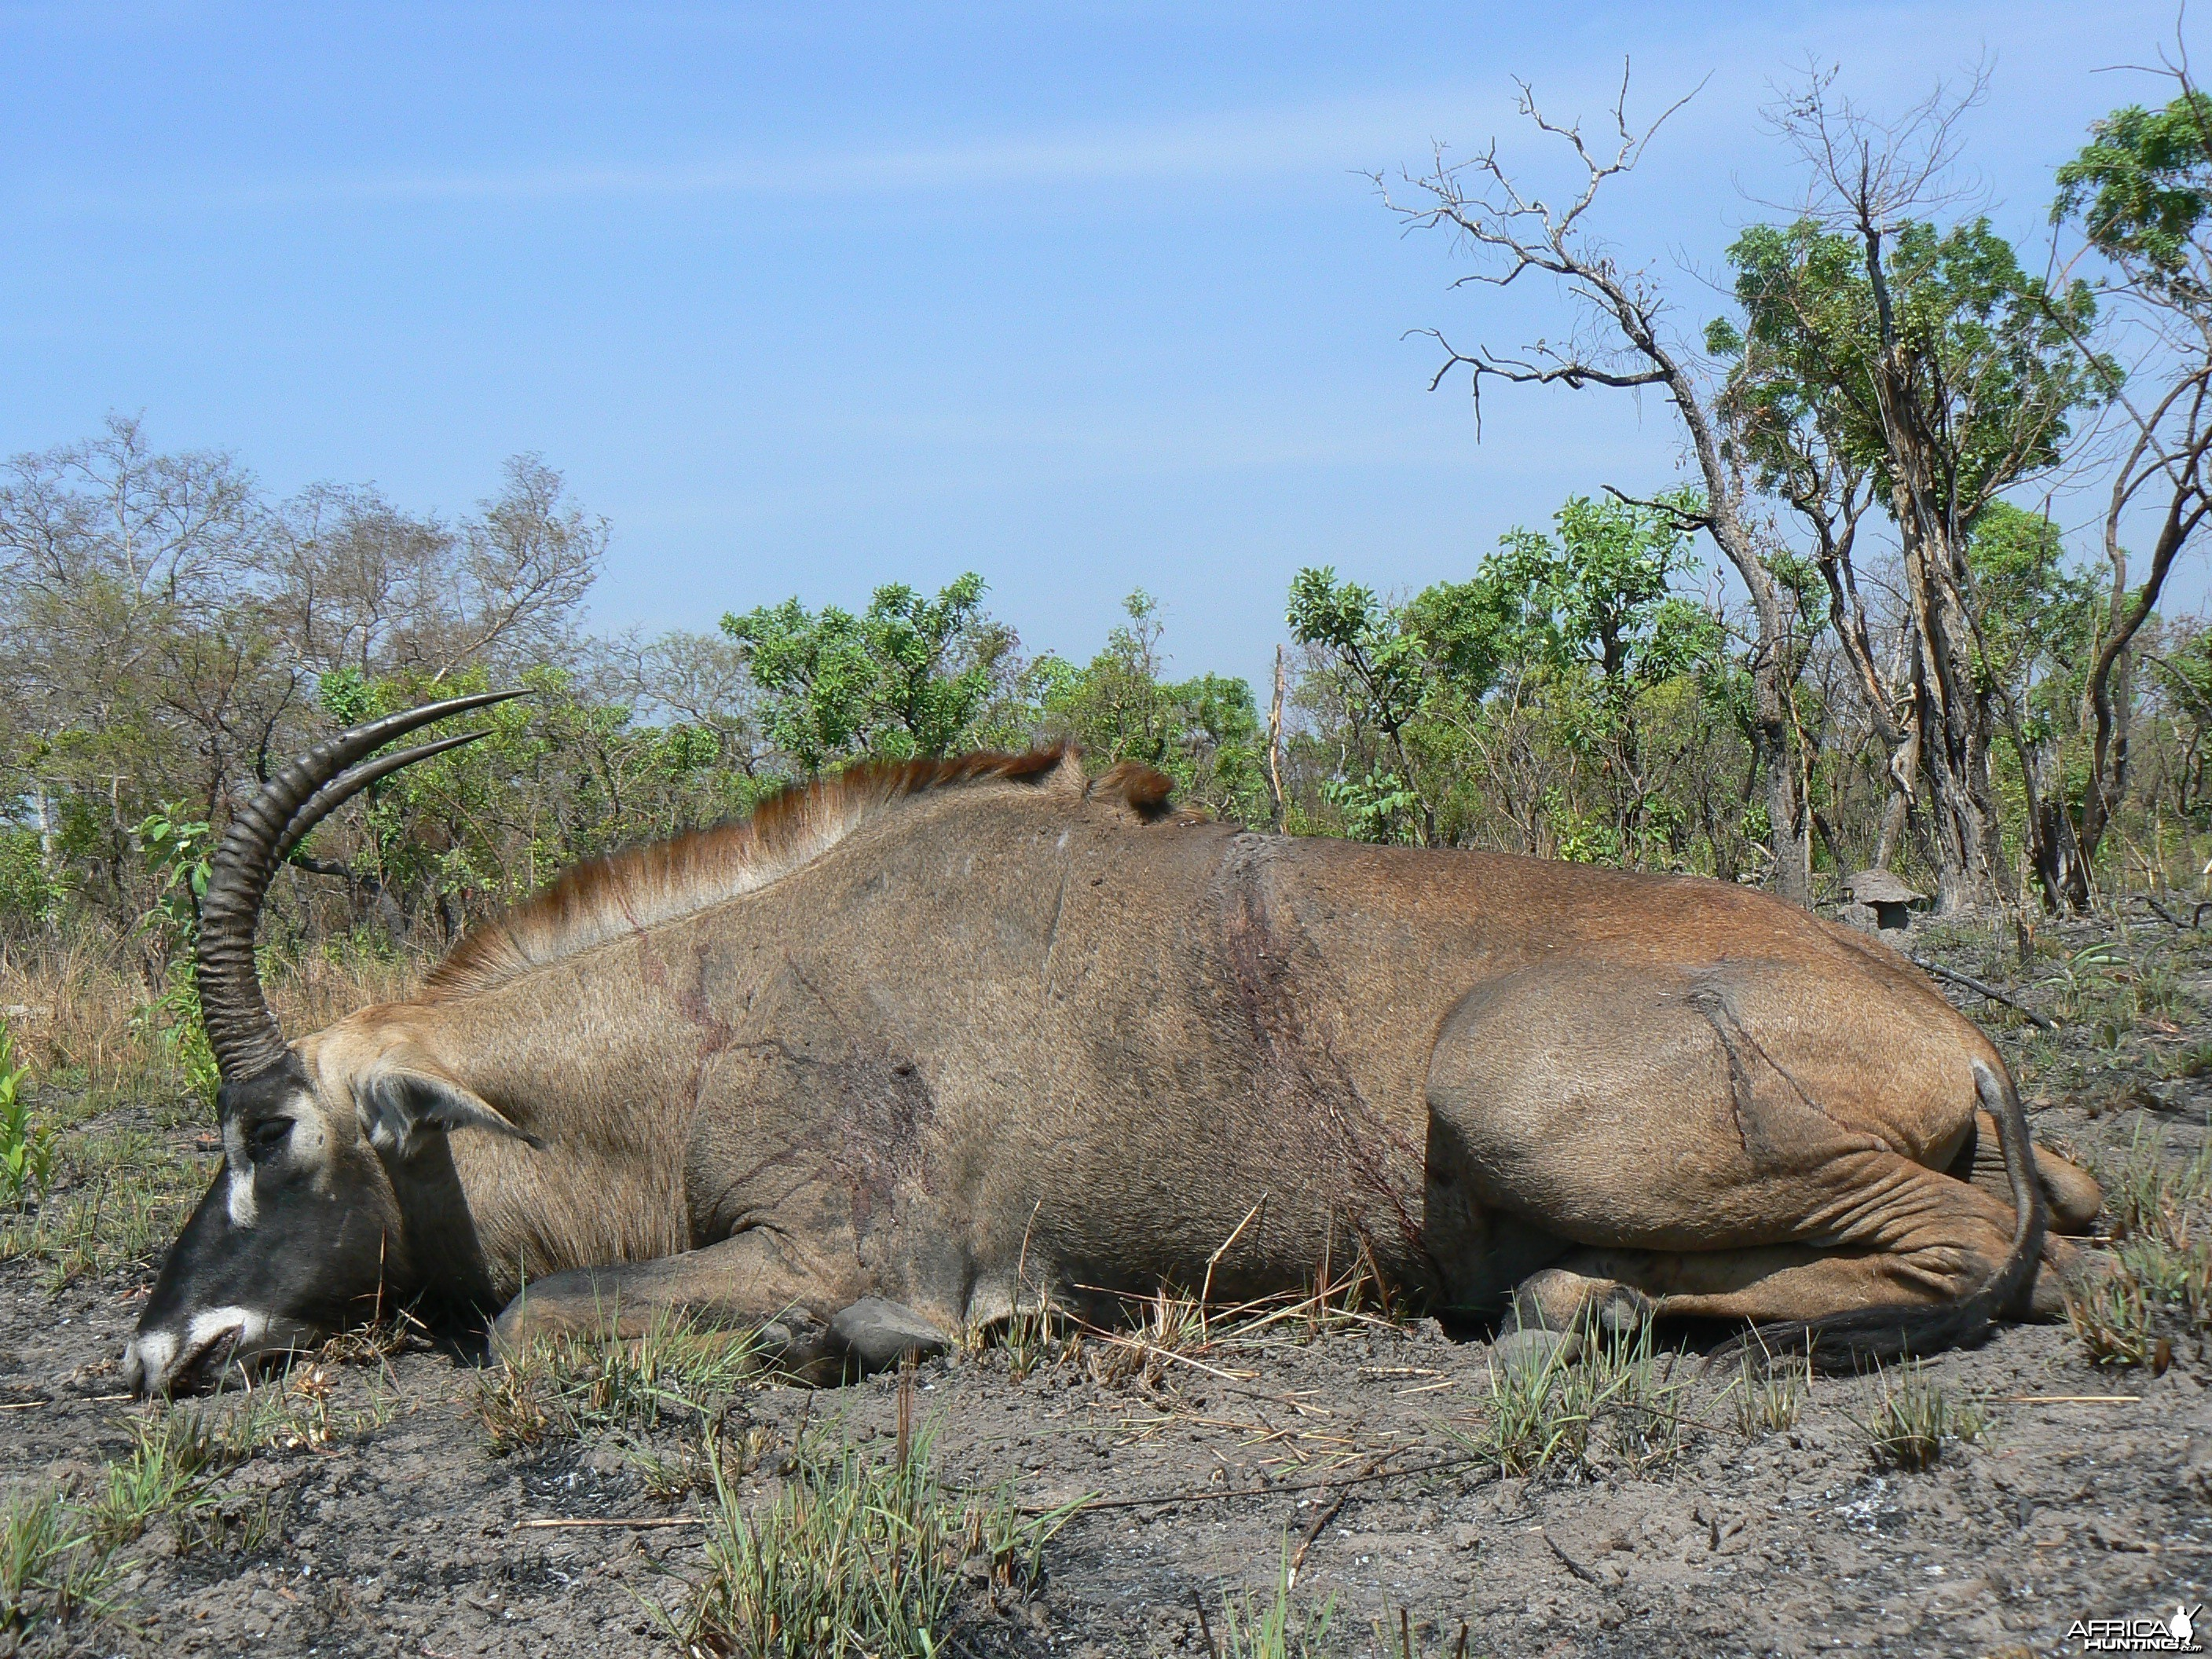 Very good 28 inches roan bull hunted in Central African Republic